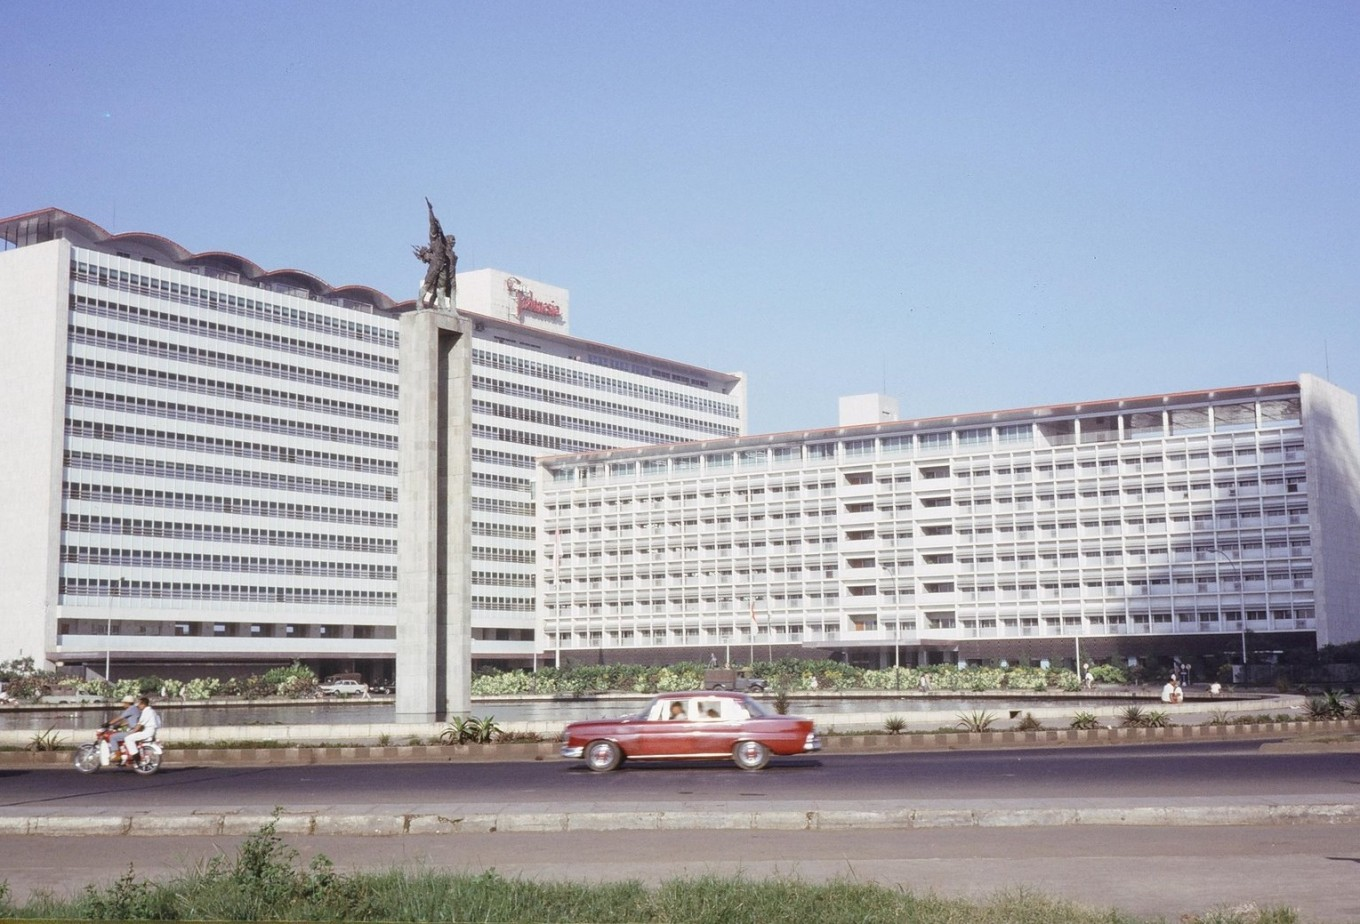 Hotel Indonesia in the 1960s.